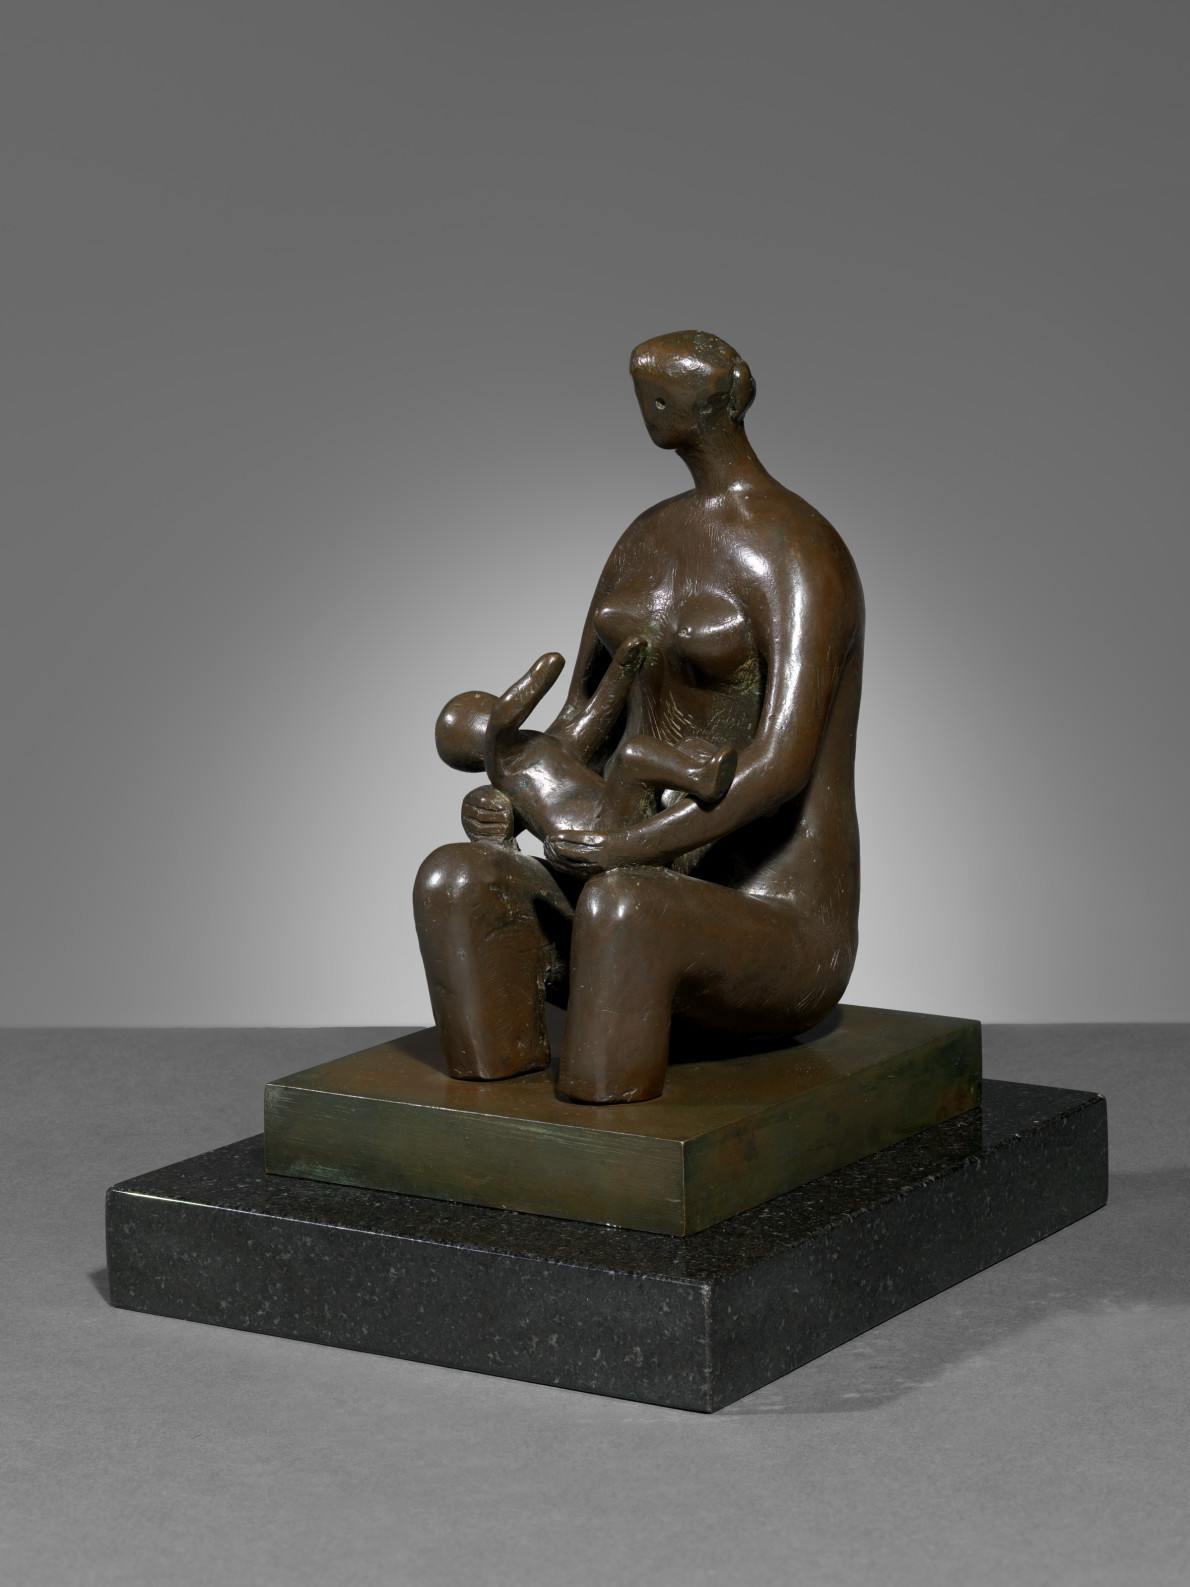 Henry Moore, Mother and Child: Round Form, 1980